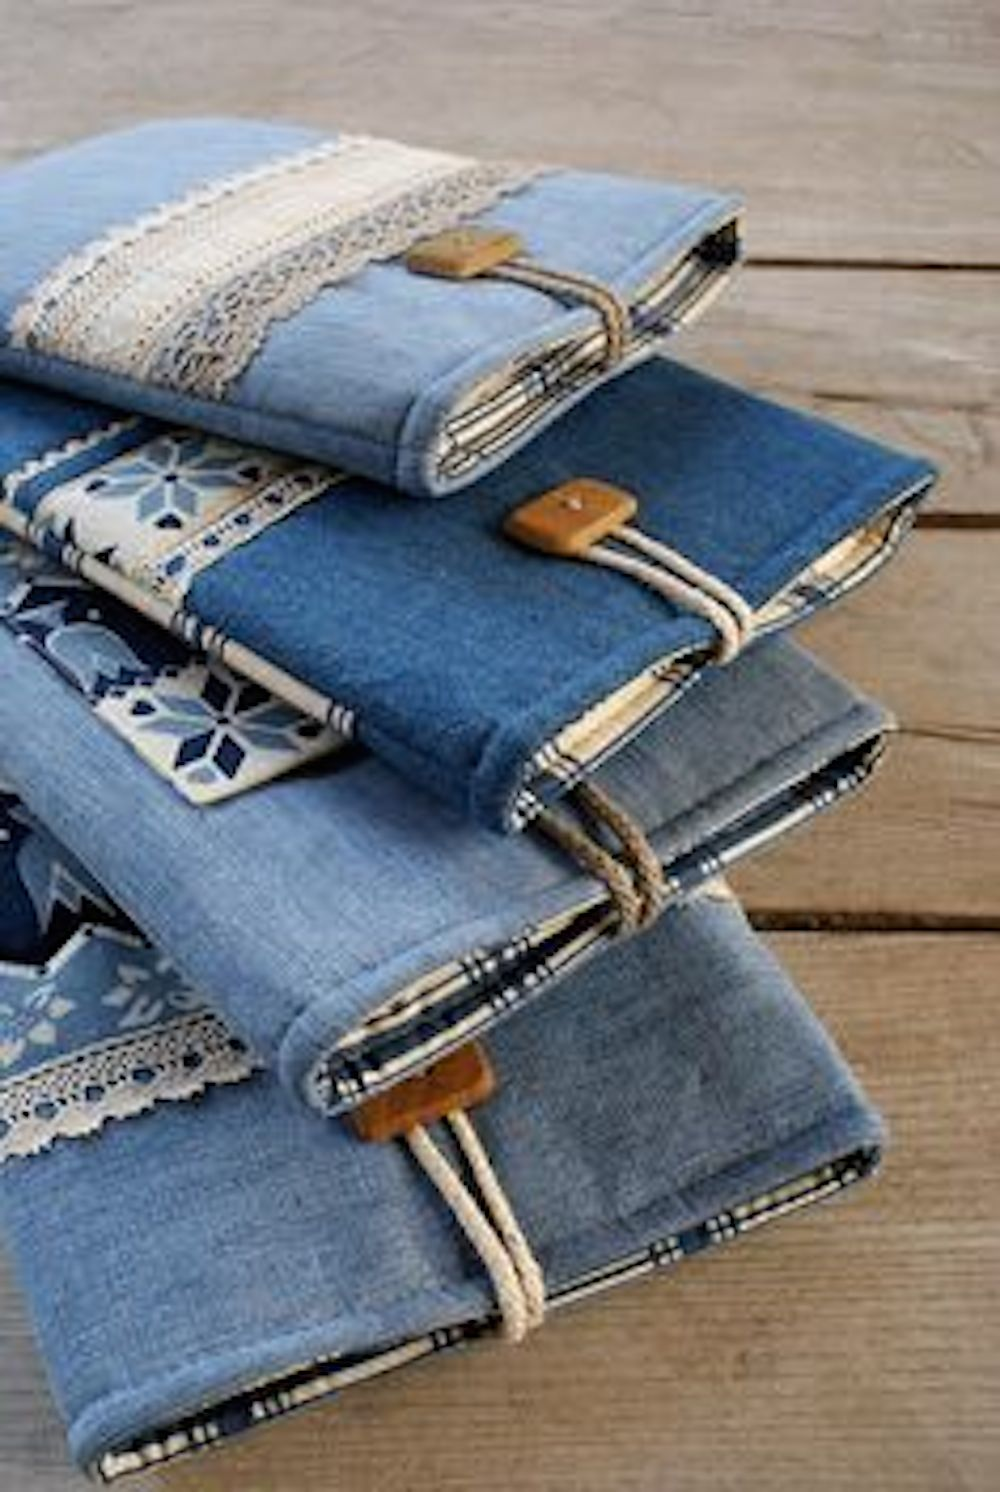 recycling-old-jeans-toys-home-accents-craft-ideas1